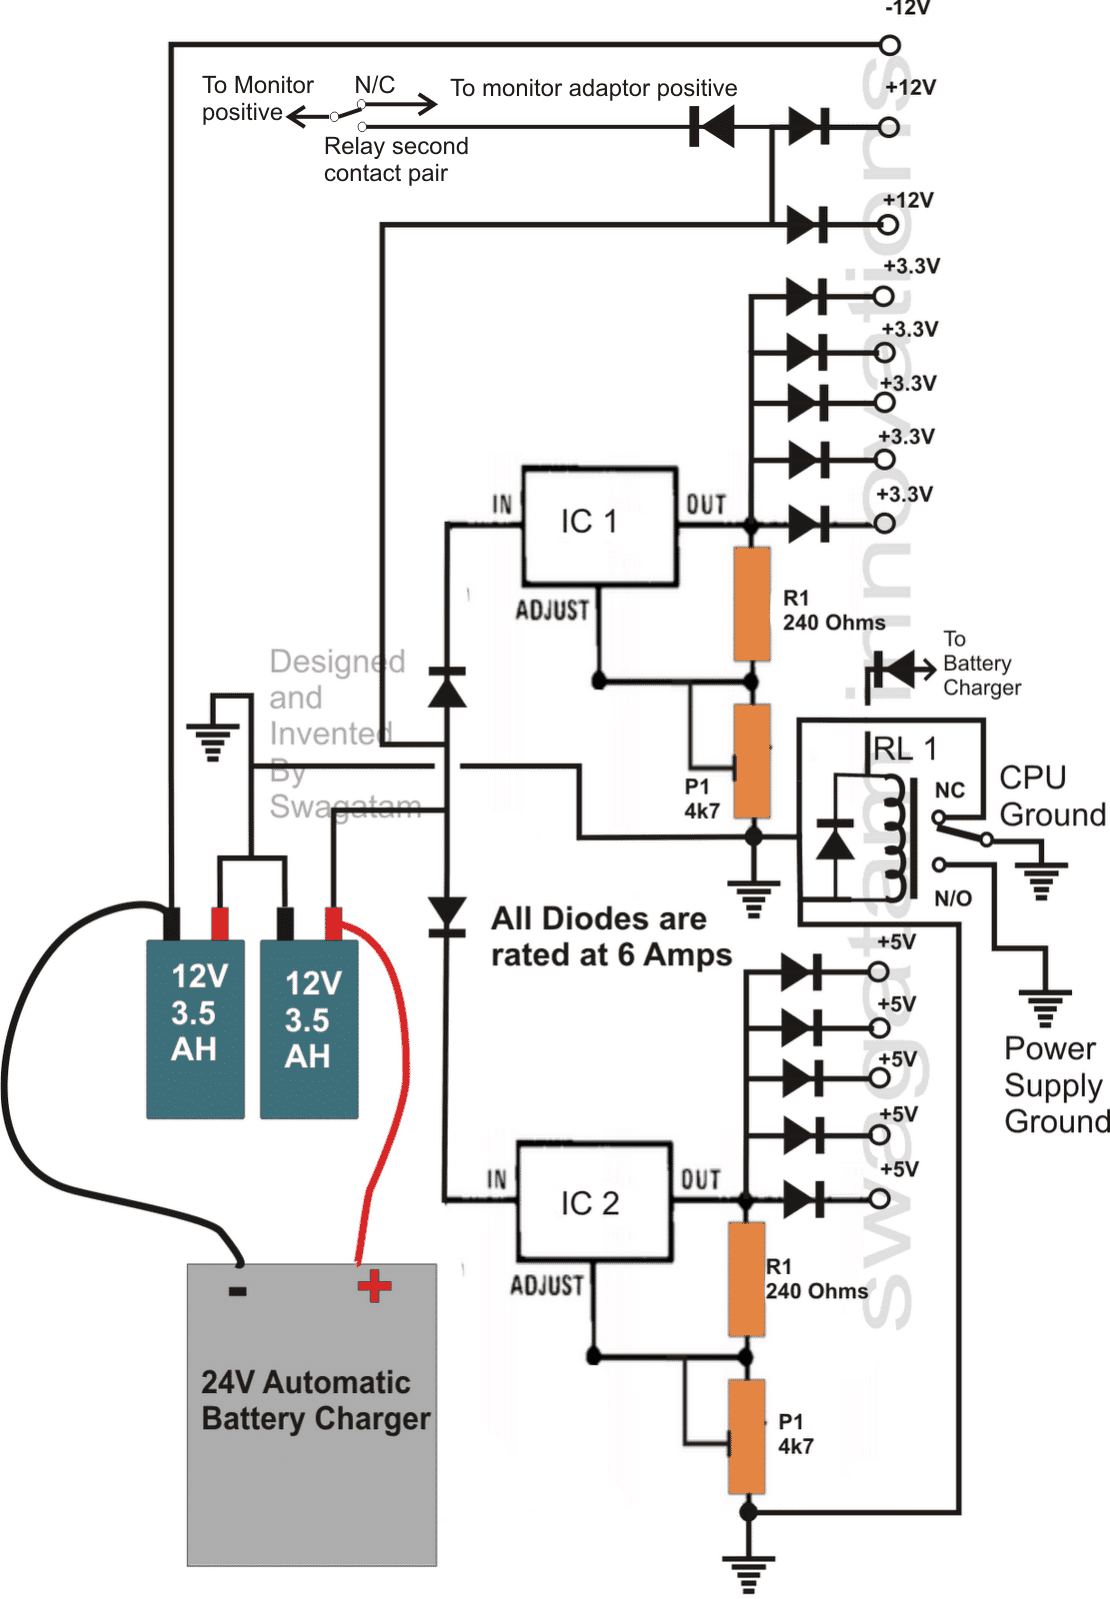 Ups circuit diagram example electrical wiring diagram transformerless ups for computers cpu rh homemade circuits com ups circuit diagram ups circuit diagram free ccuart Image collections